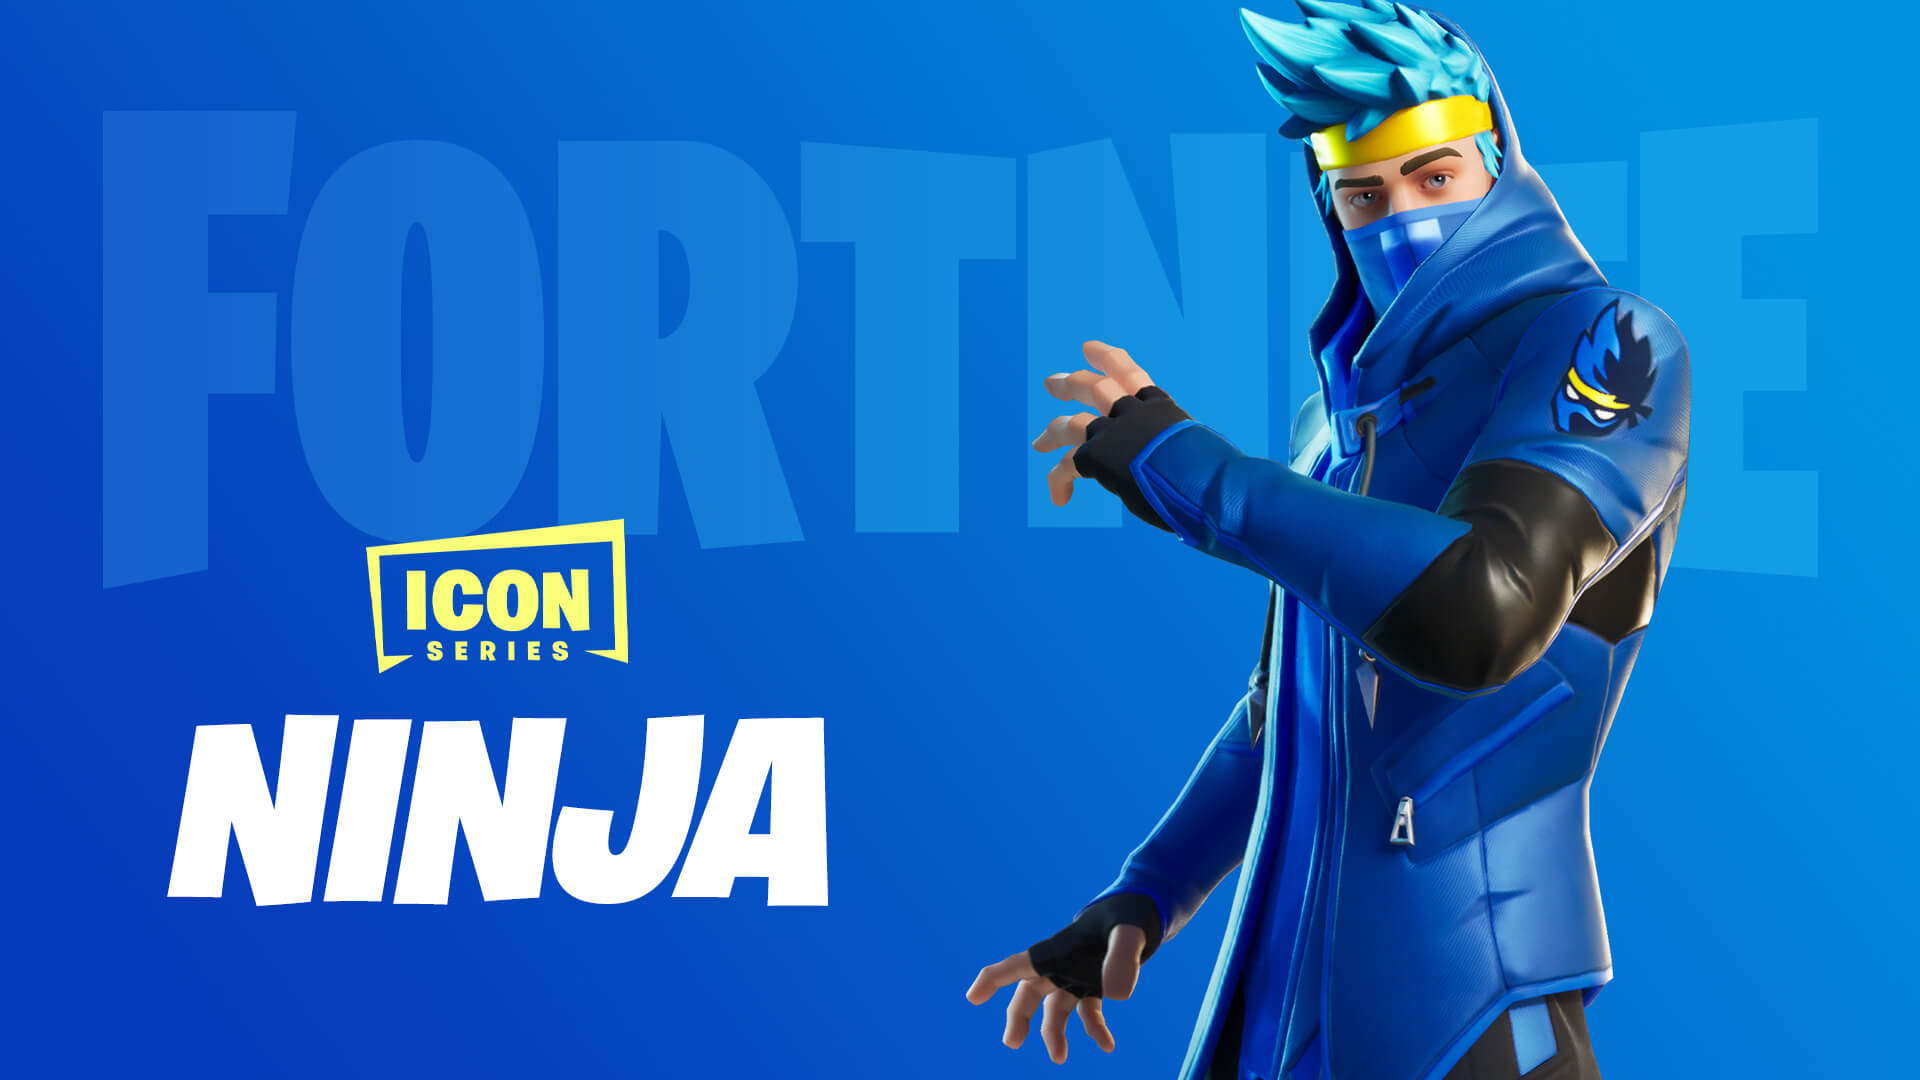 Last Time A Skin Was Released On Fortnite How To Get The Fortnite Ninja Skin Tom S Guide